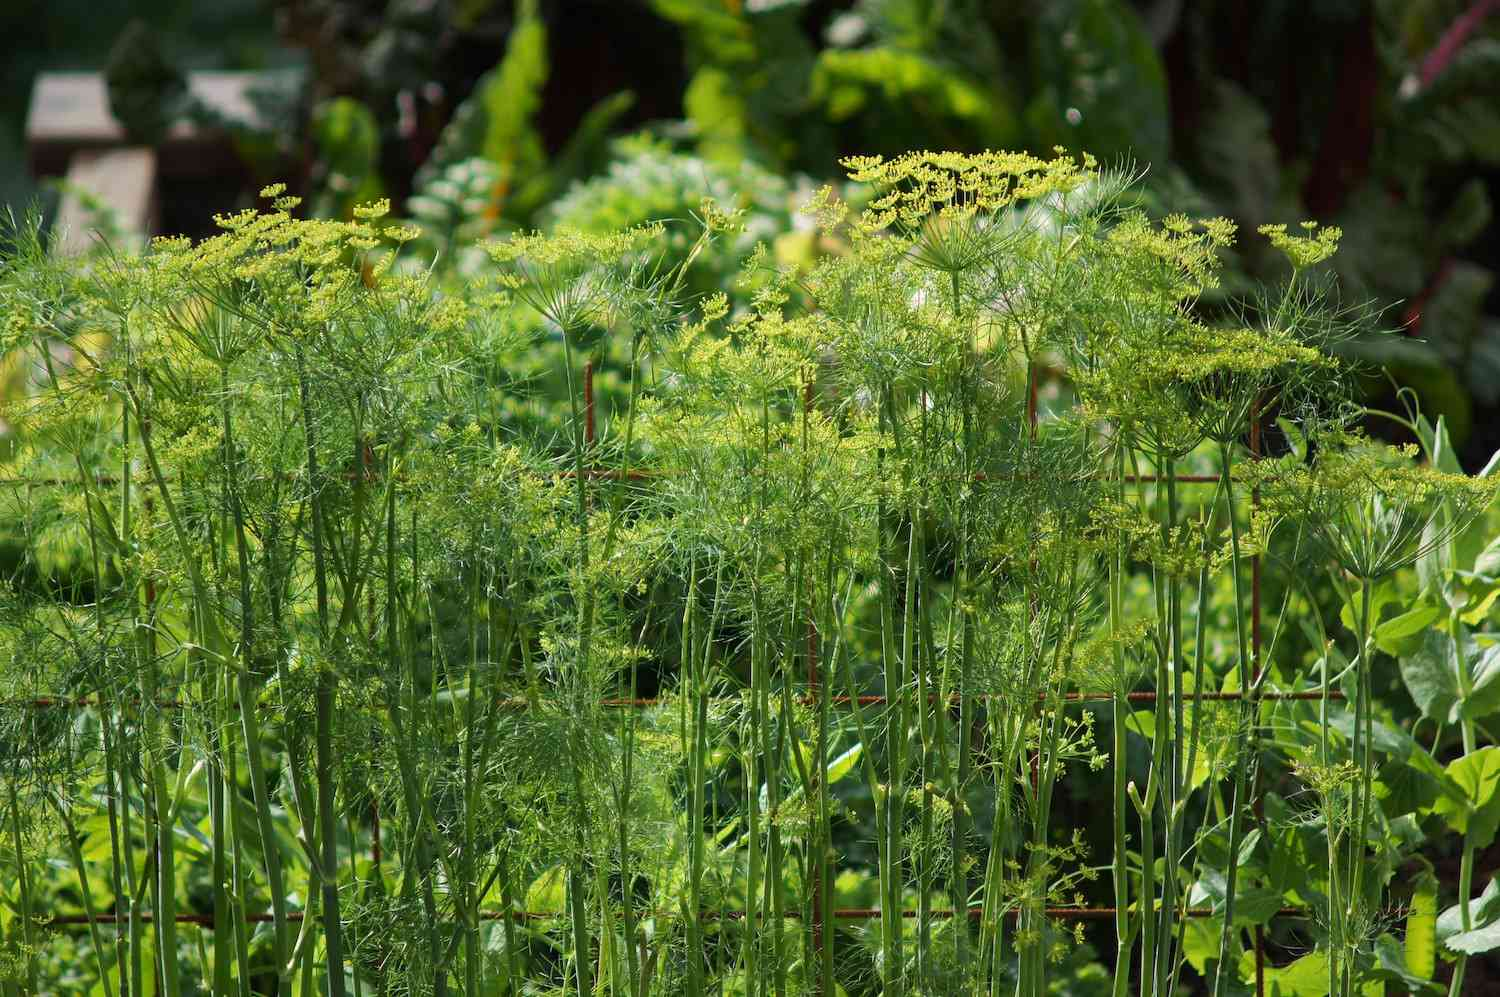 A patch of dill growing in a sunny garden